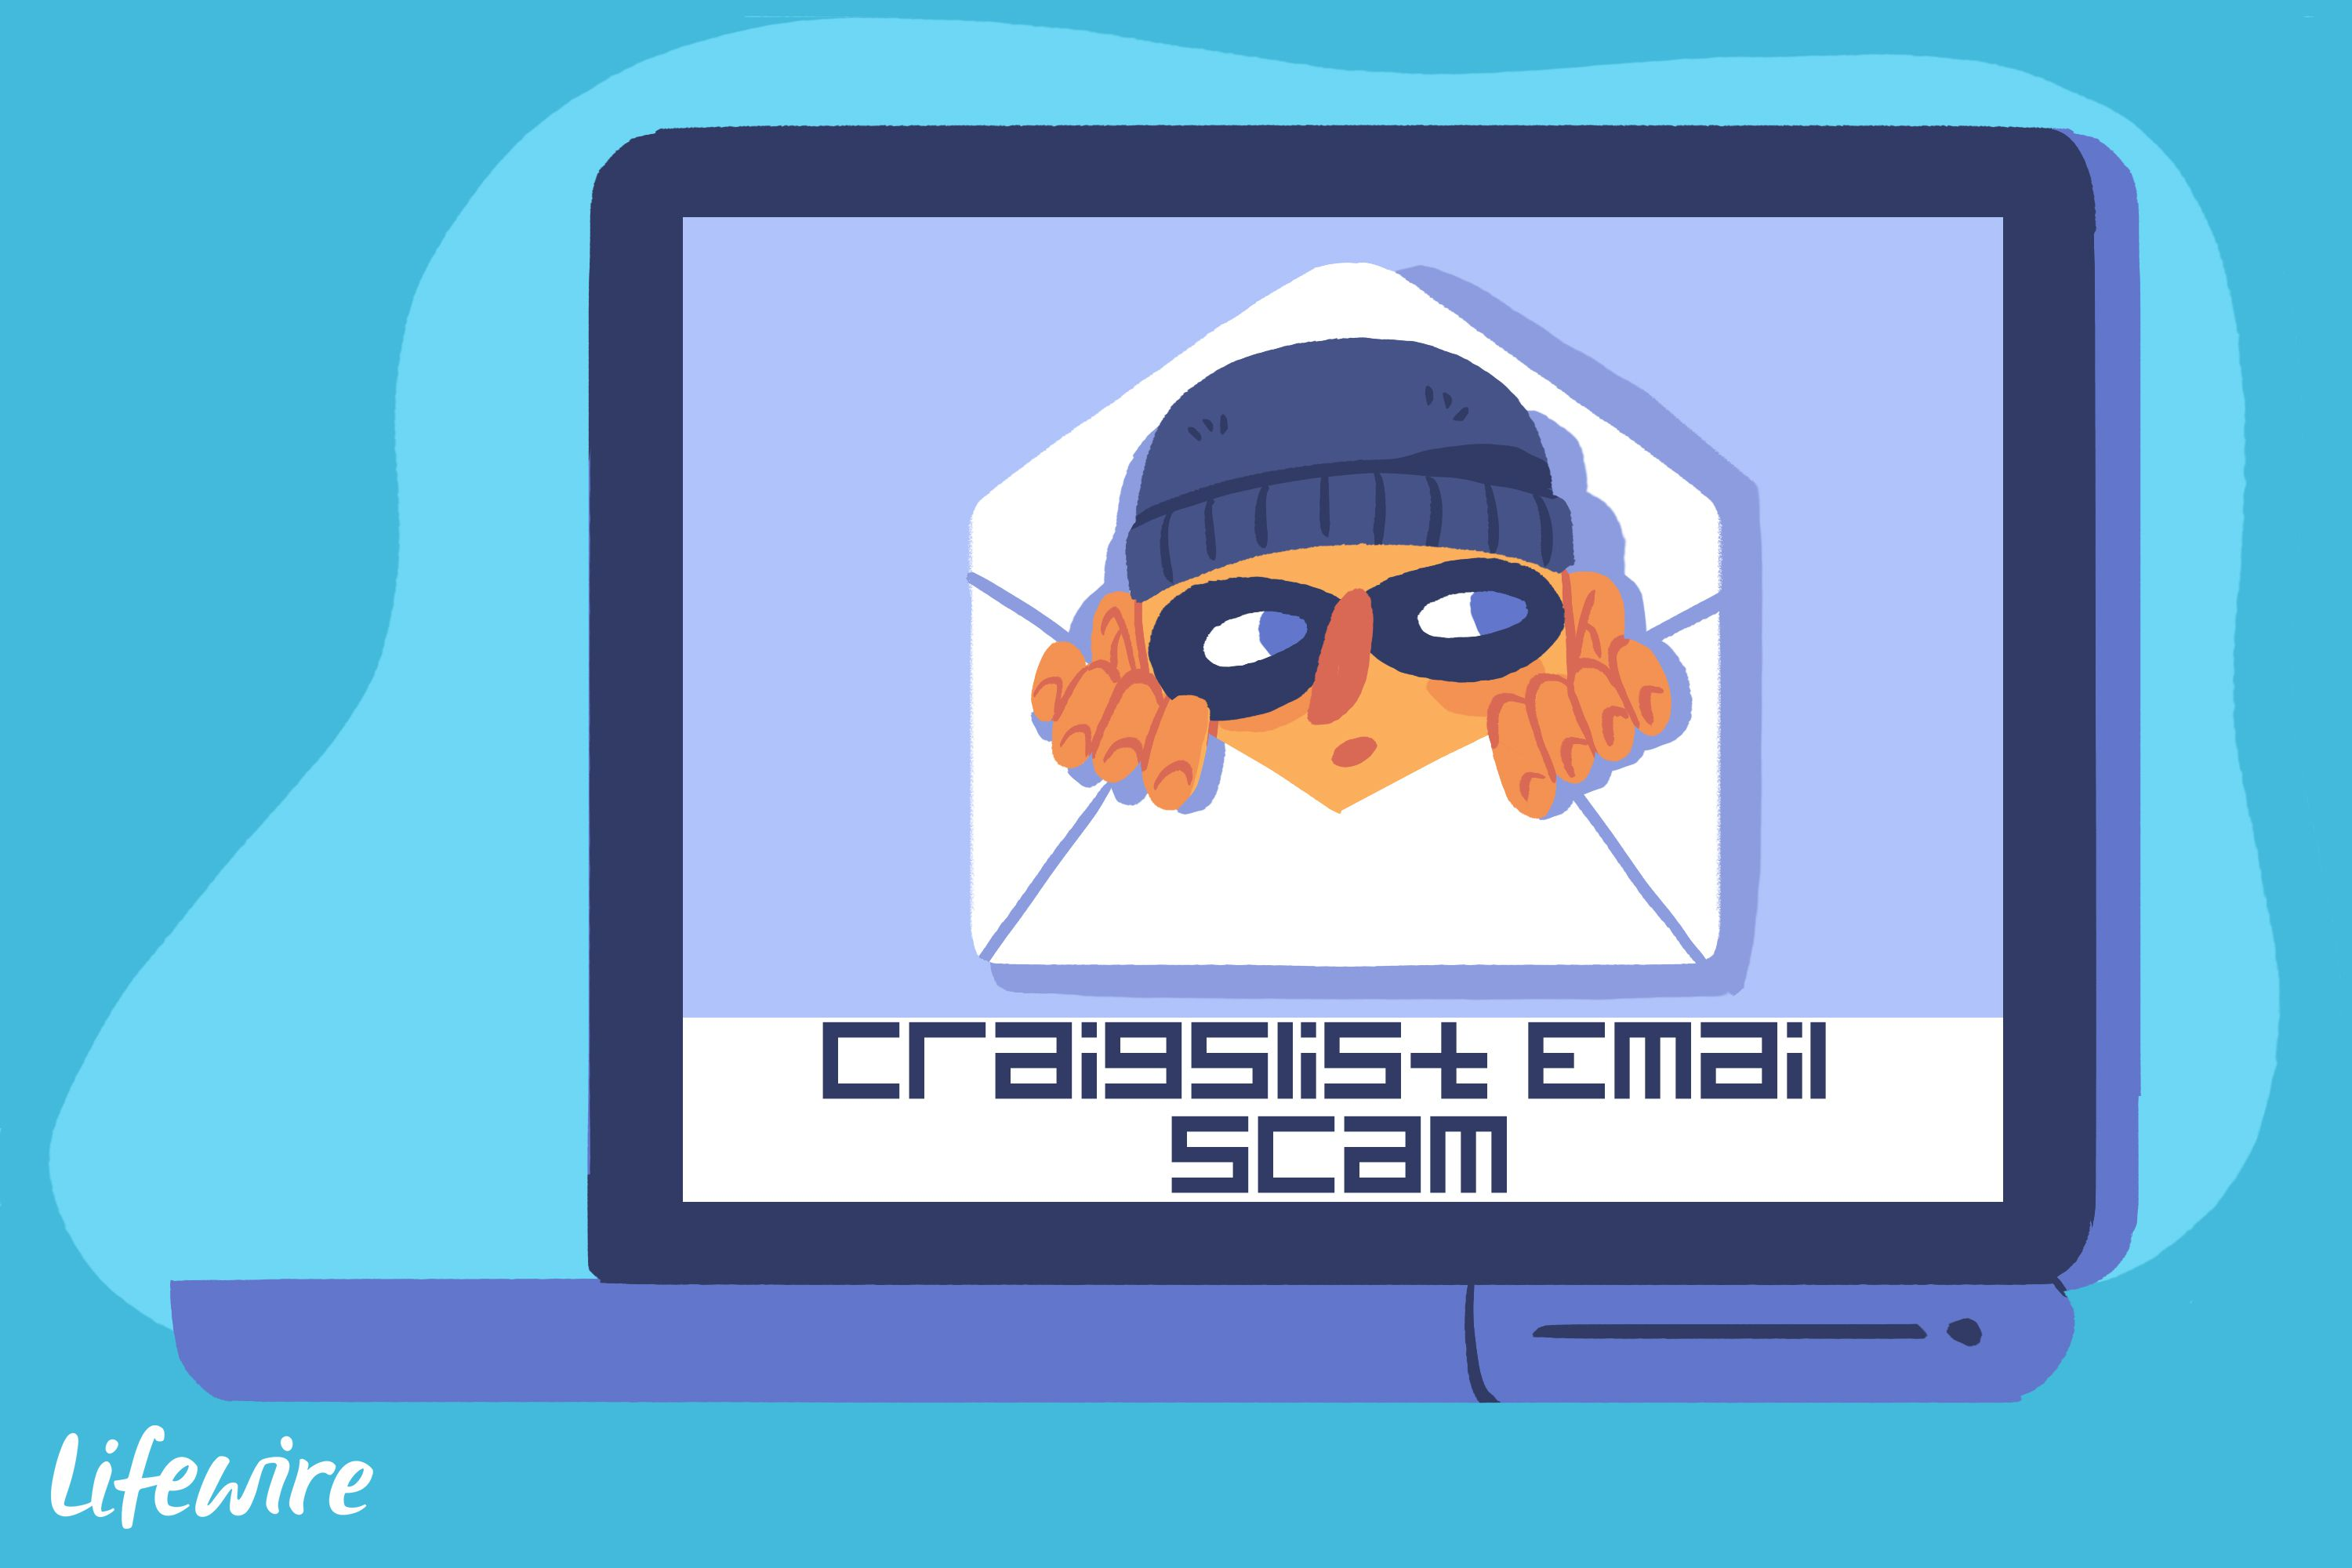 The Craigslist Email Scam What It Is And How To Protect Yourself